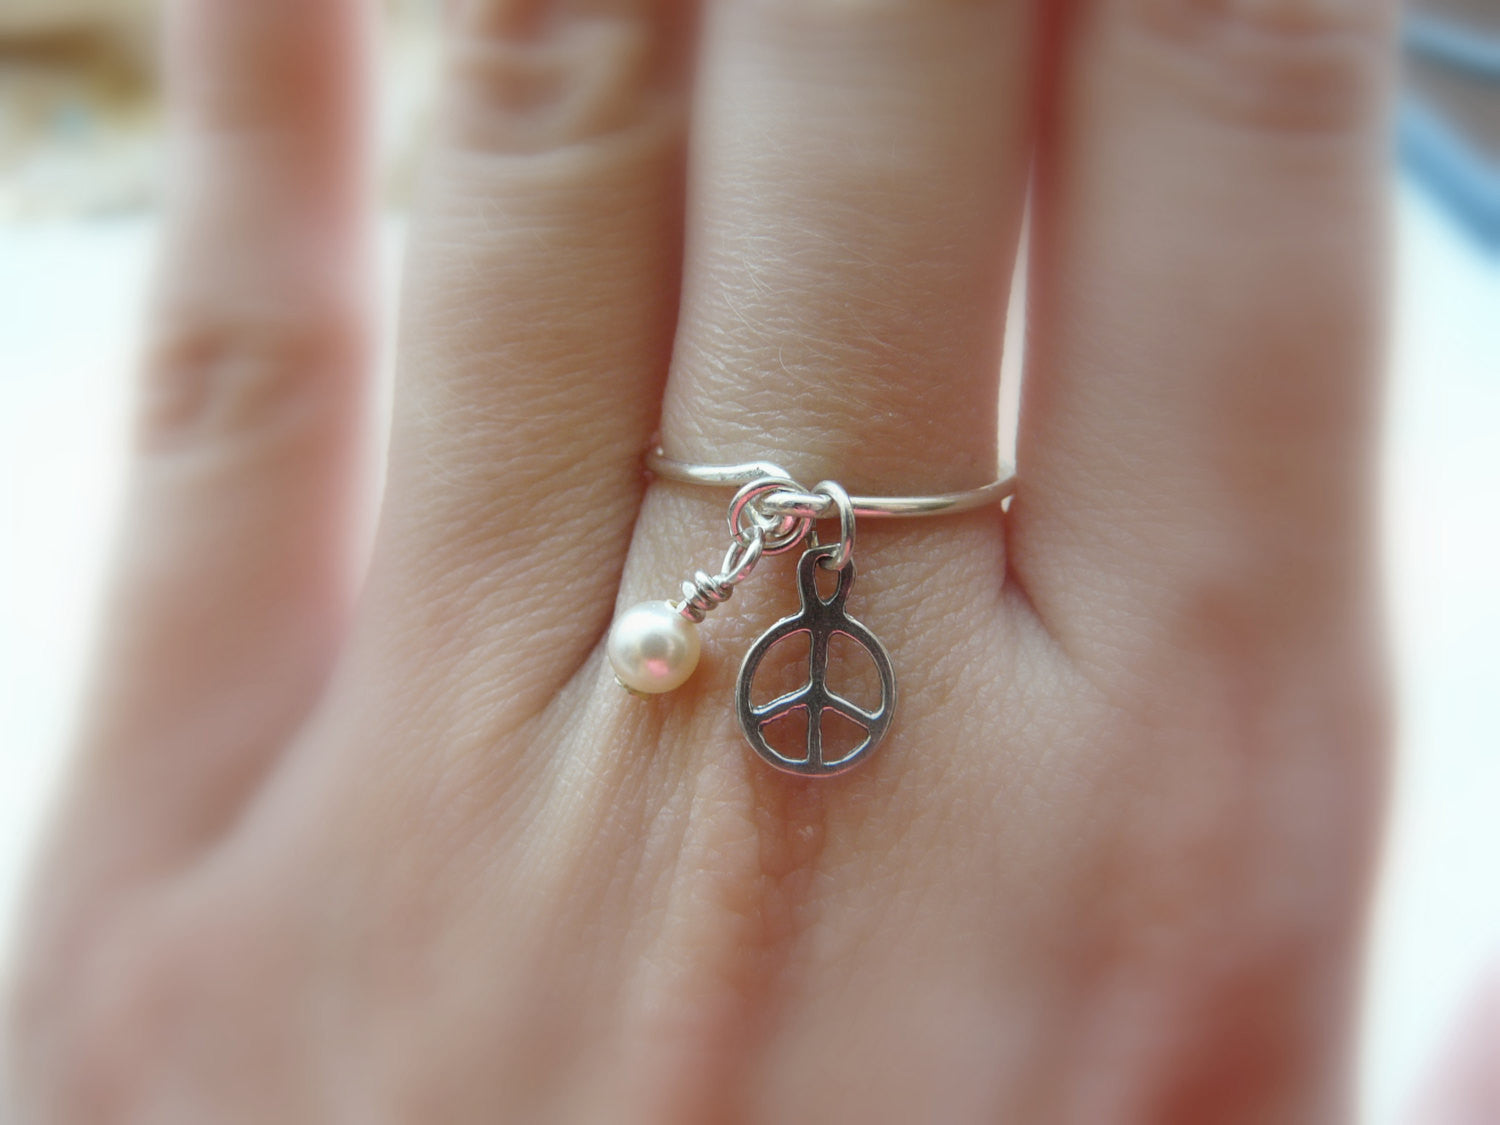 Peace sign charm ring - OpaLandJewelry